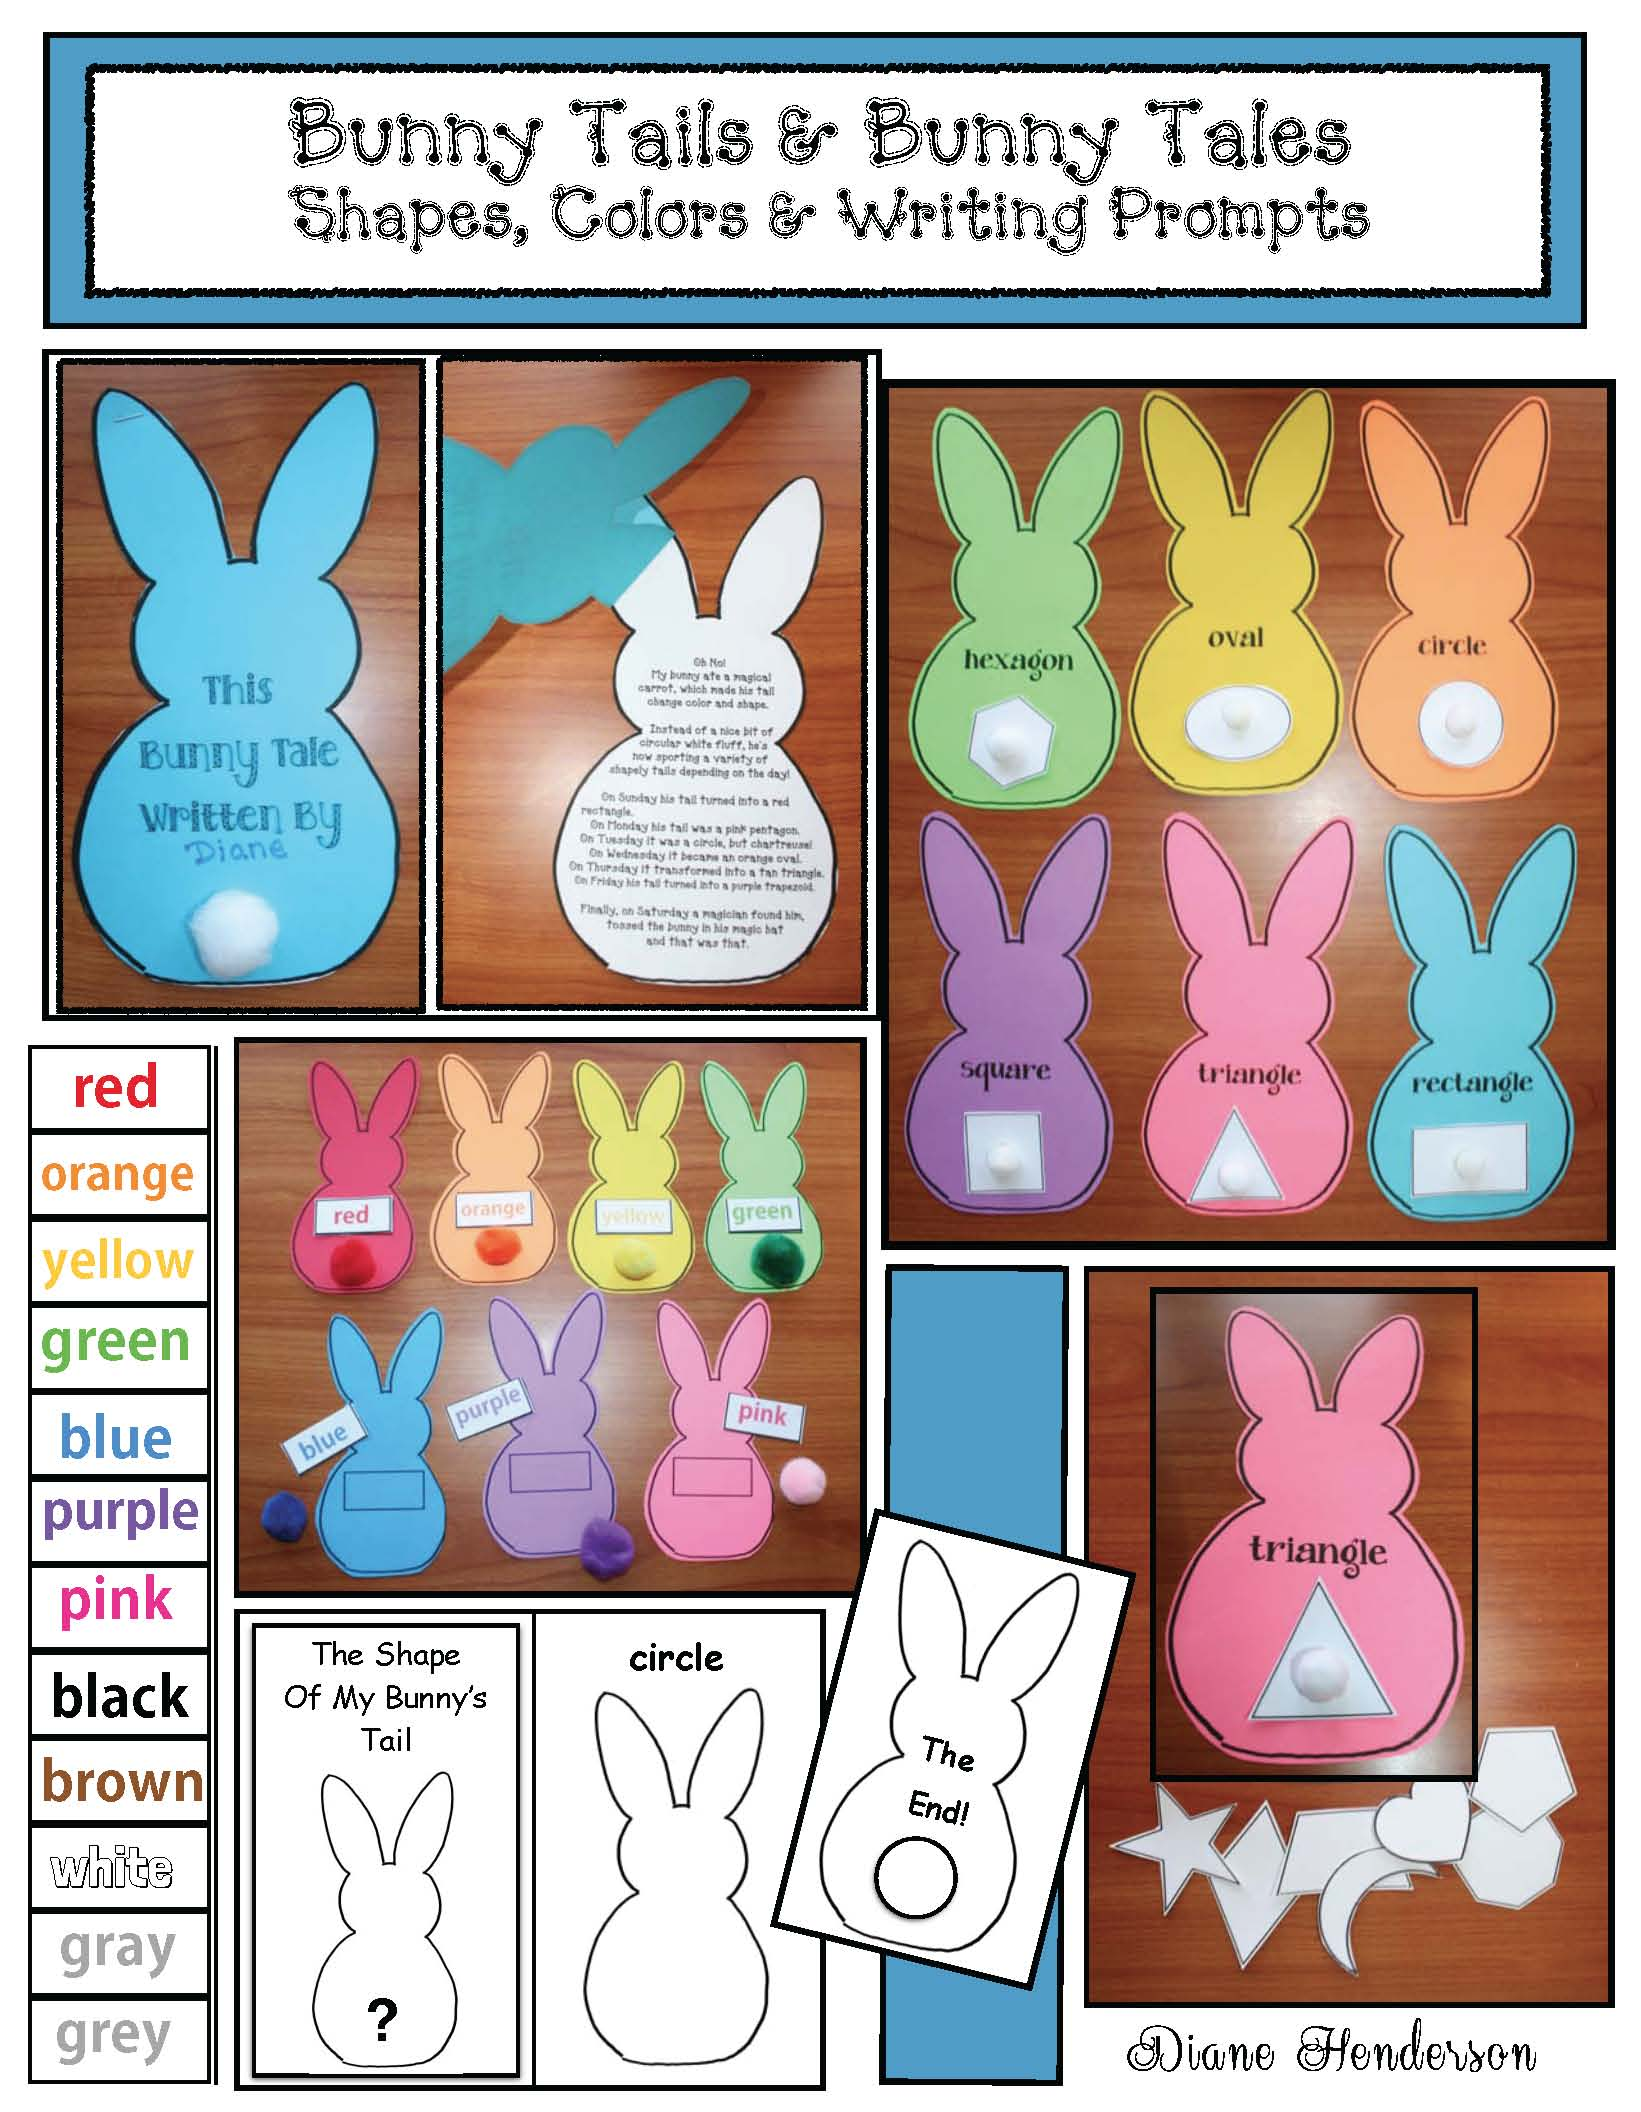 spring crafts, spring activities, bunny crafts, color games, spring writing prompts, flower crafts, Mother's Day cards, 2D shape activities